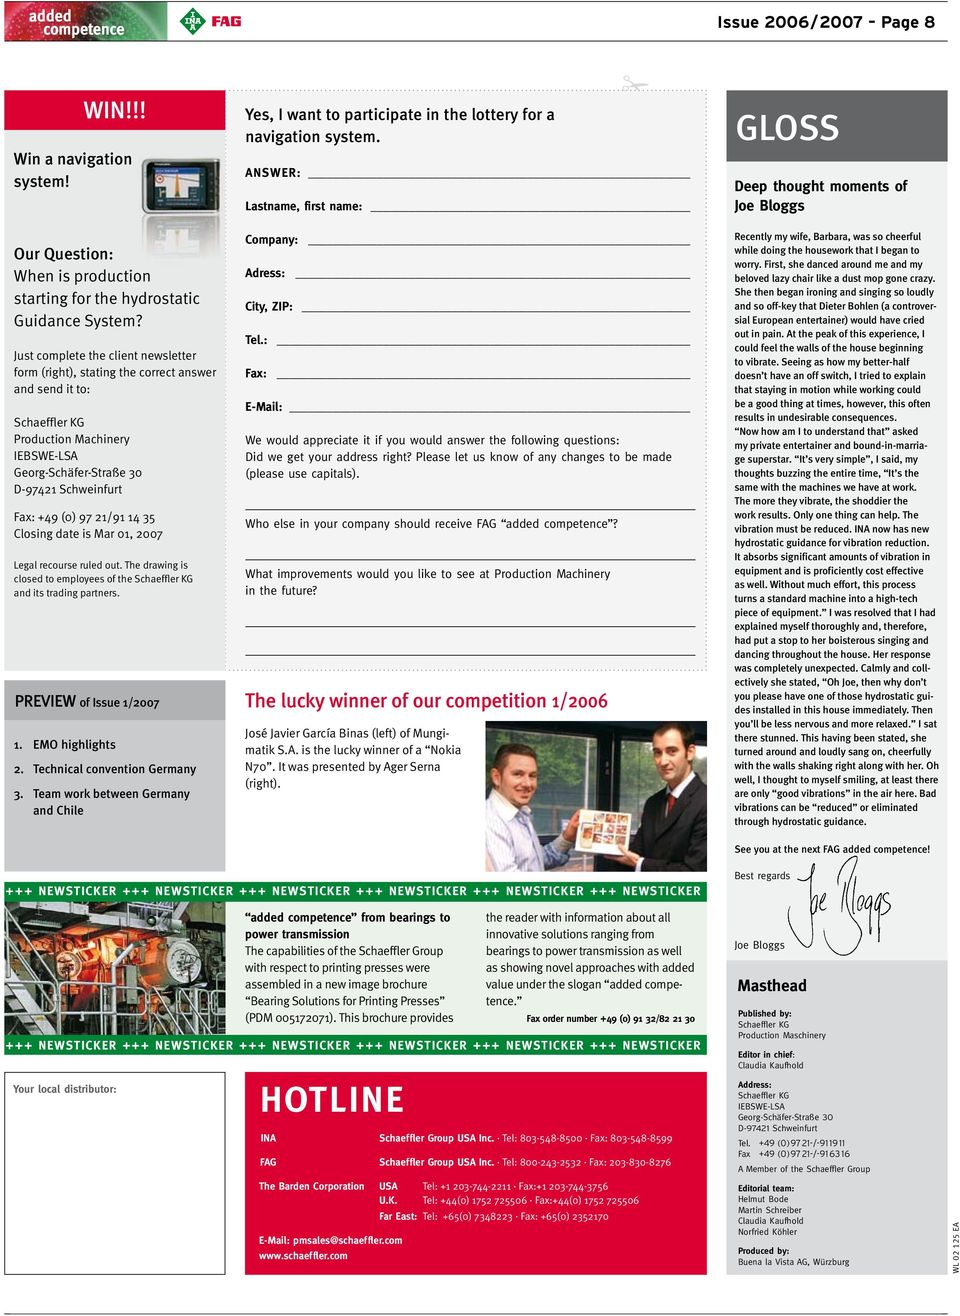 21/91 14 35 Closing date is Mar 01, 2007 Legal recourse ruled out. The drawing is closed to employees of the Schaeffler KG and its trading partners. PREVIEW of Issue 1/2007 1. EMO highlights 2.